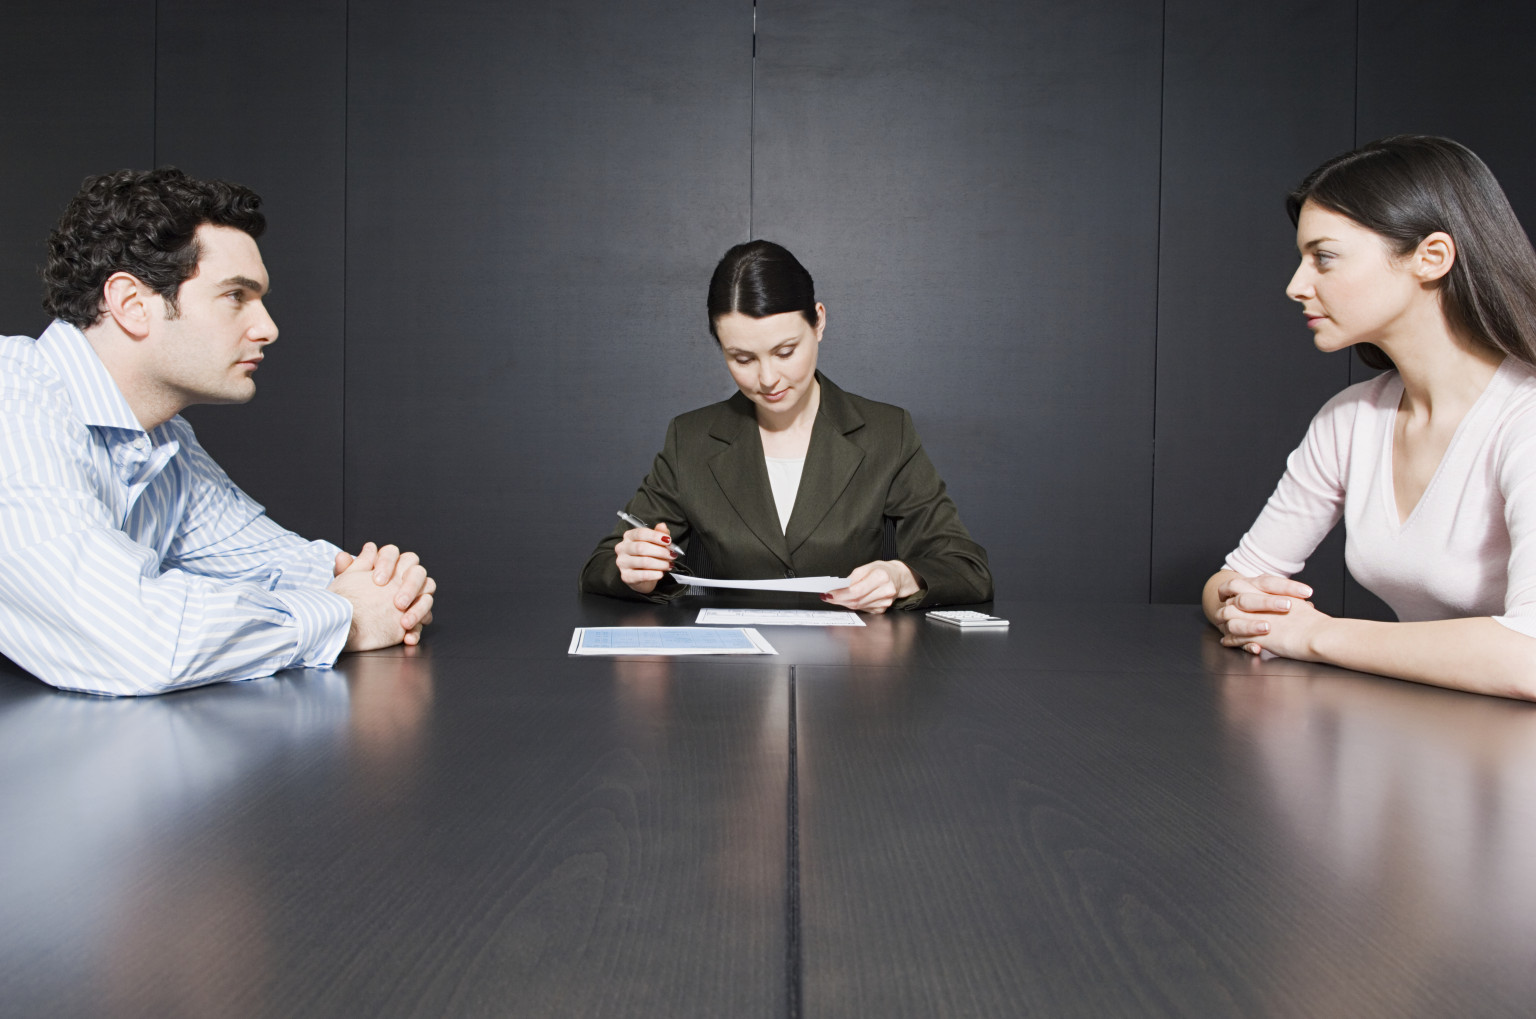 Advantages of private mediation